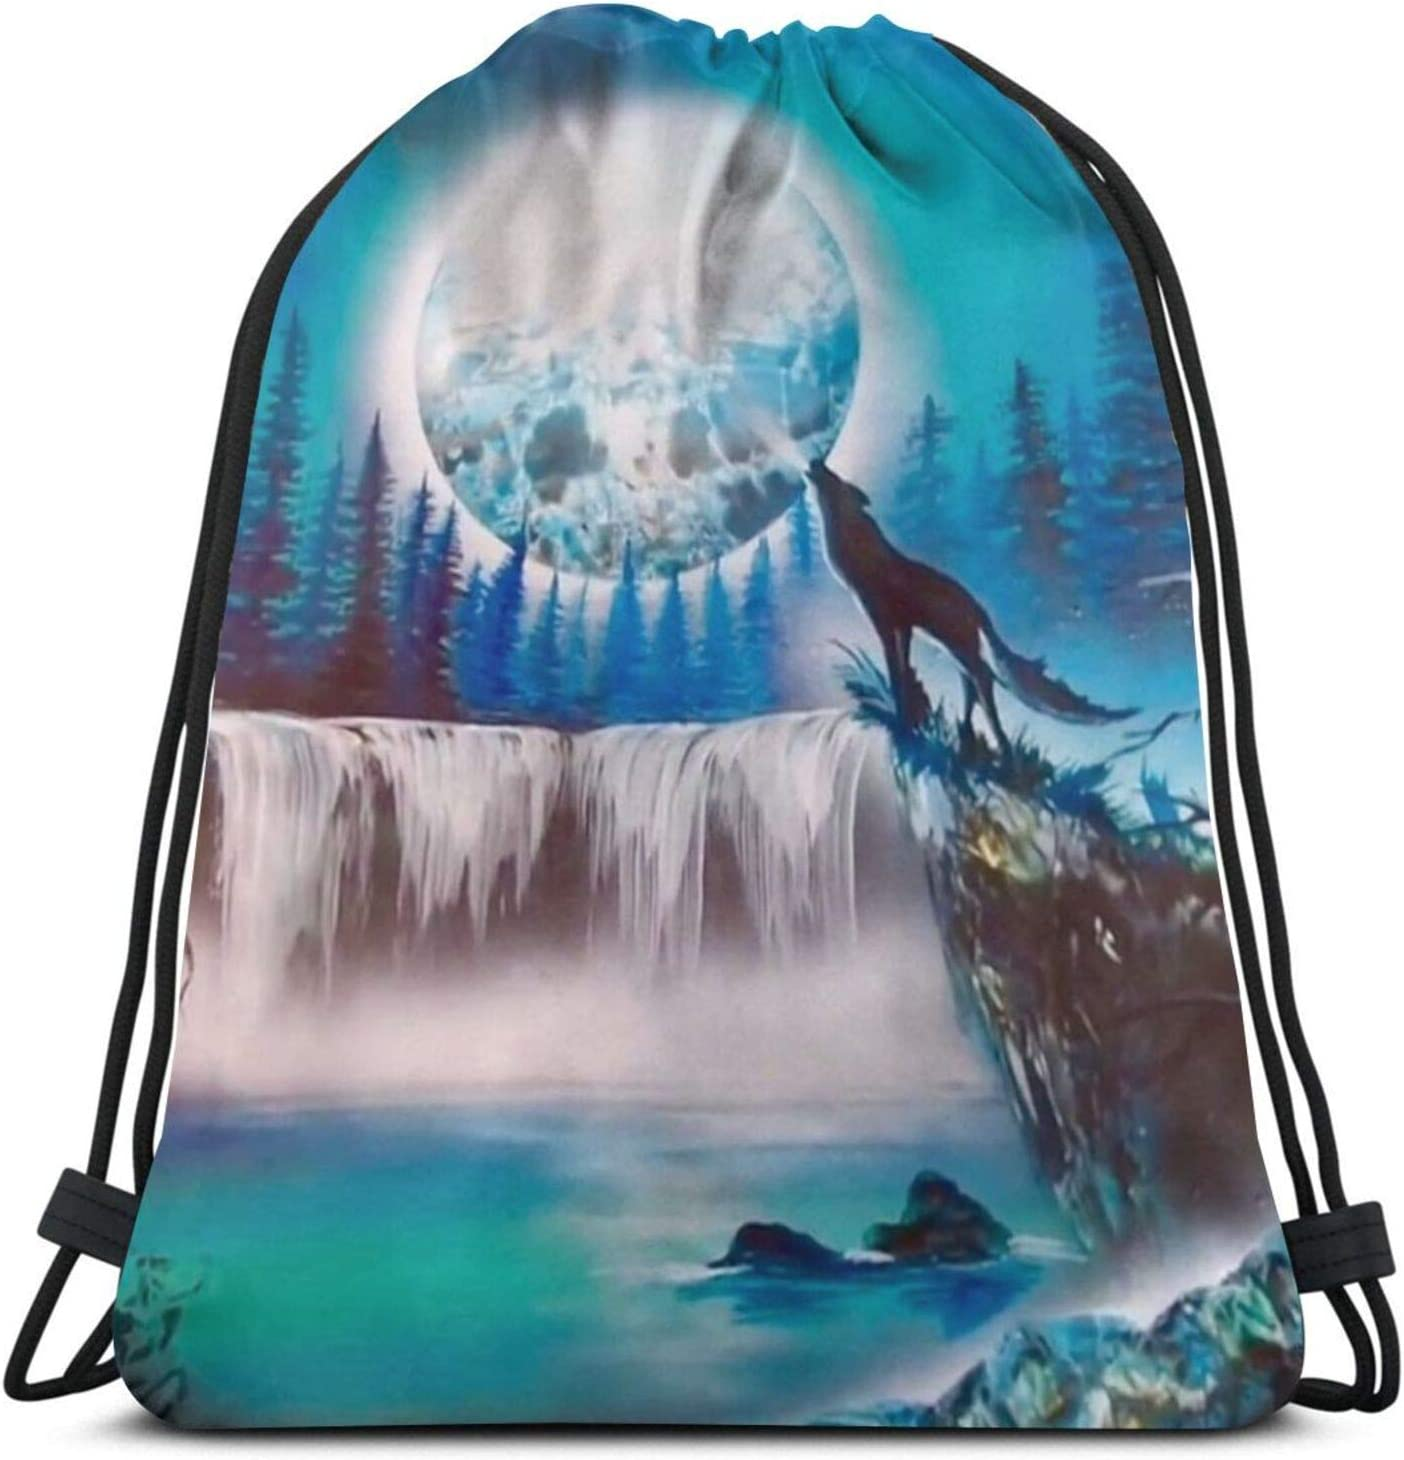 Water Resistant Max 57% OFF Drawstring Backpack Bac Polyester Branded goods Durable String